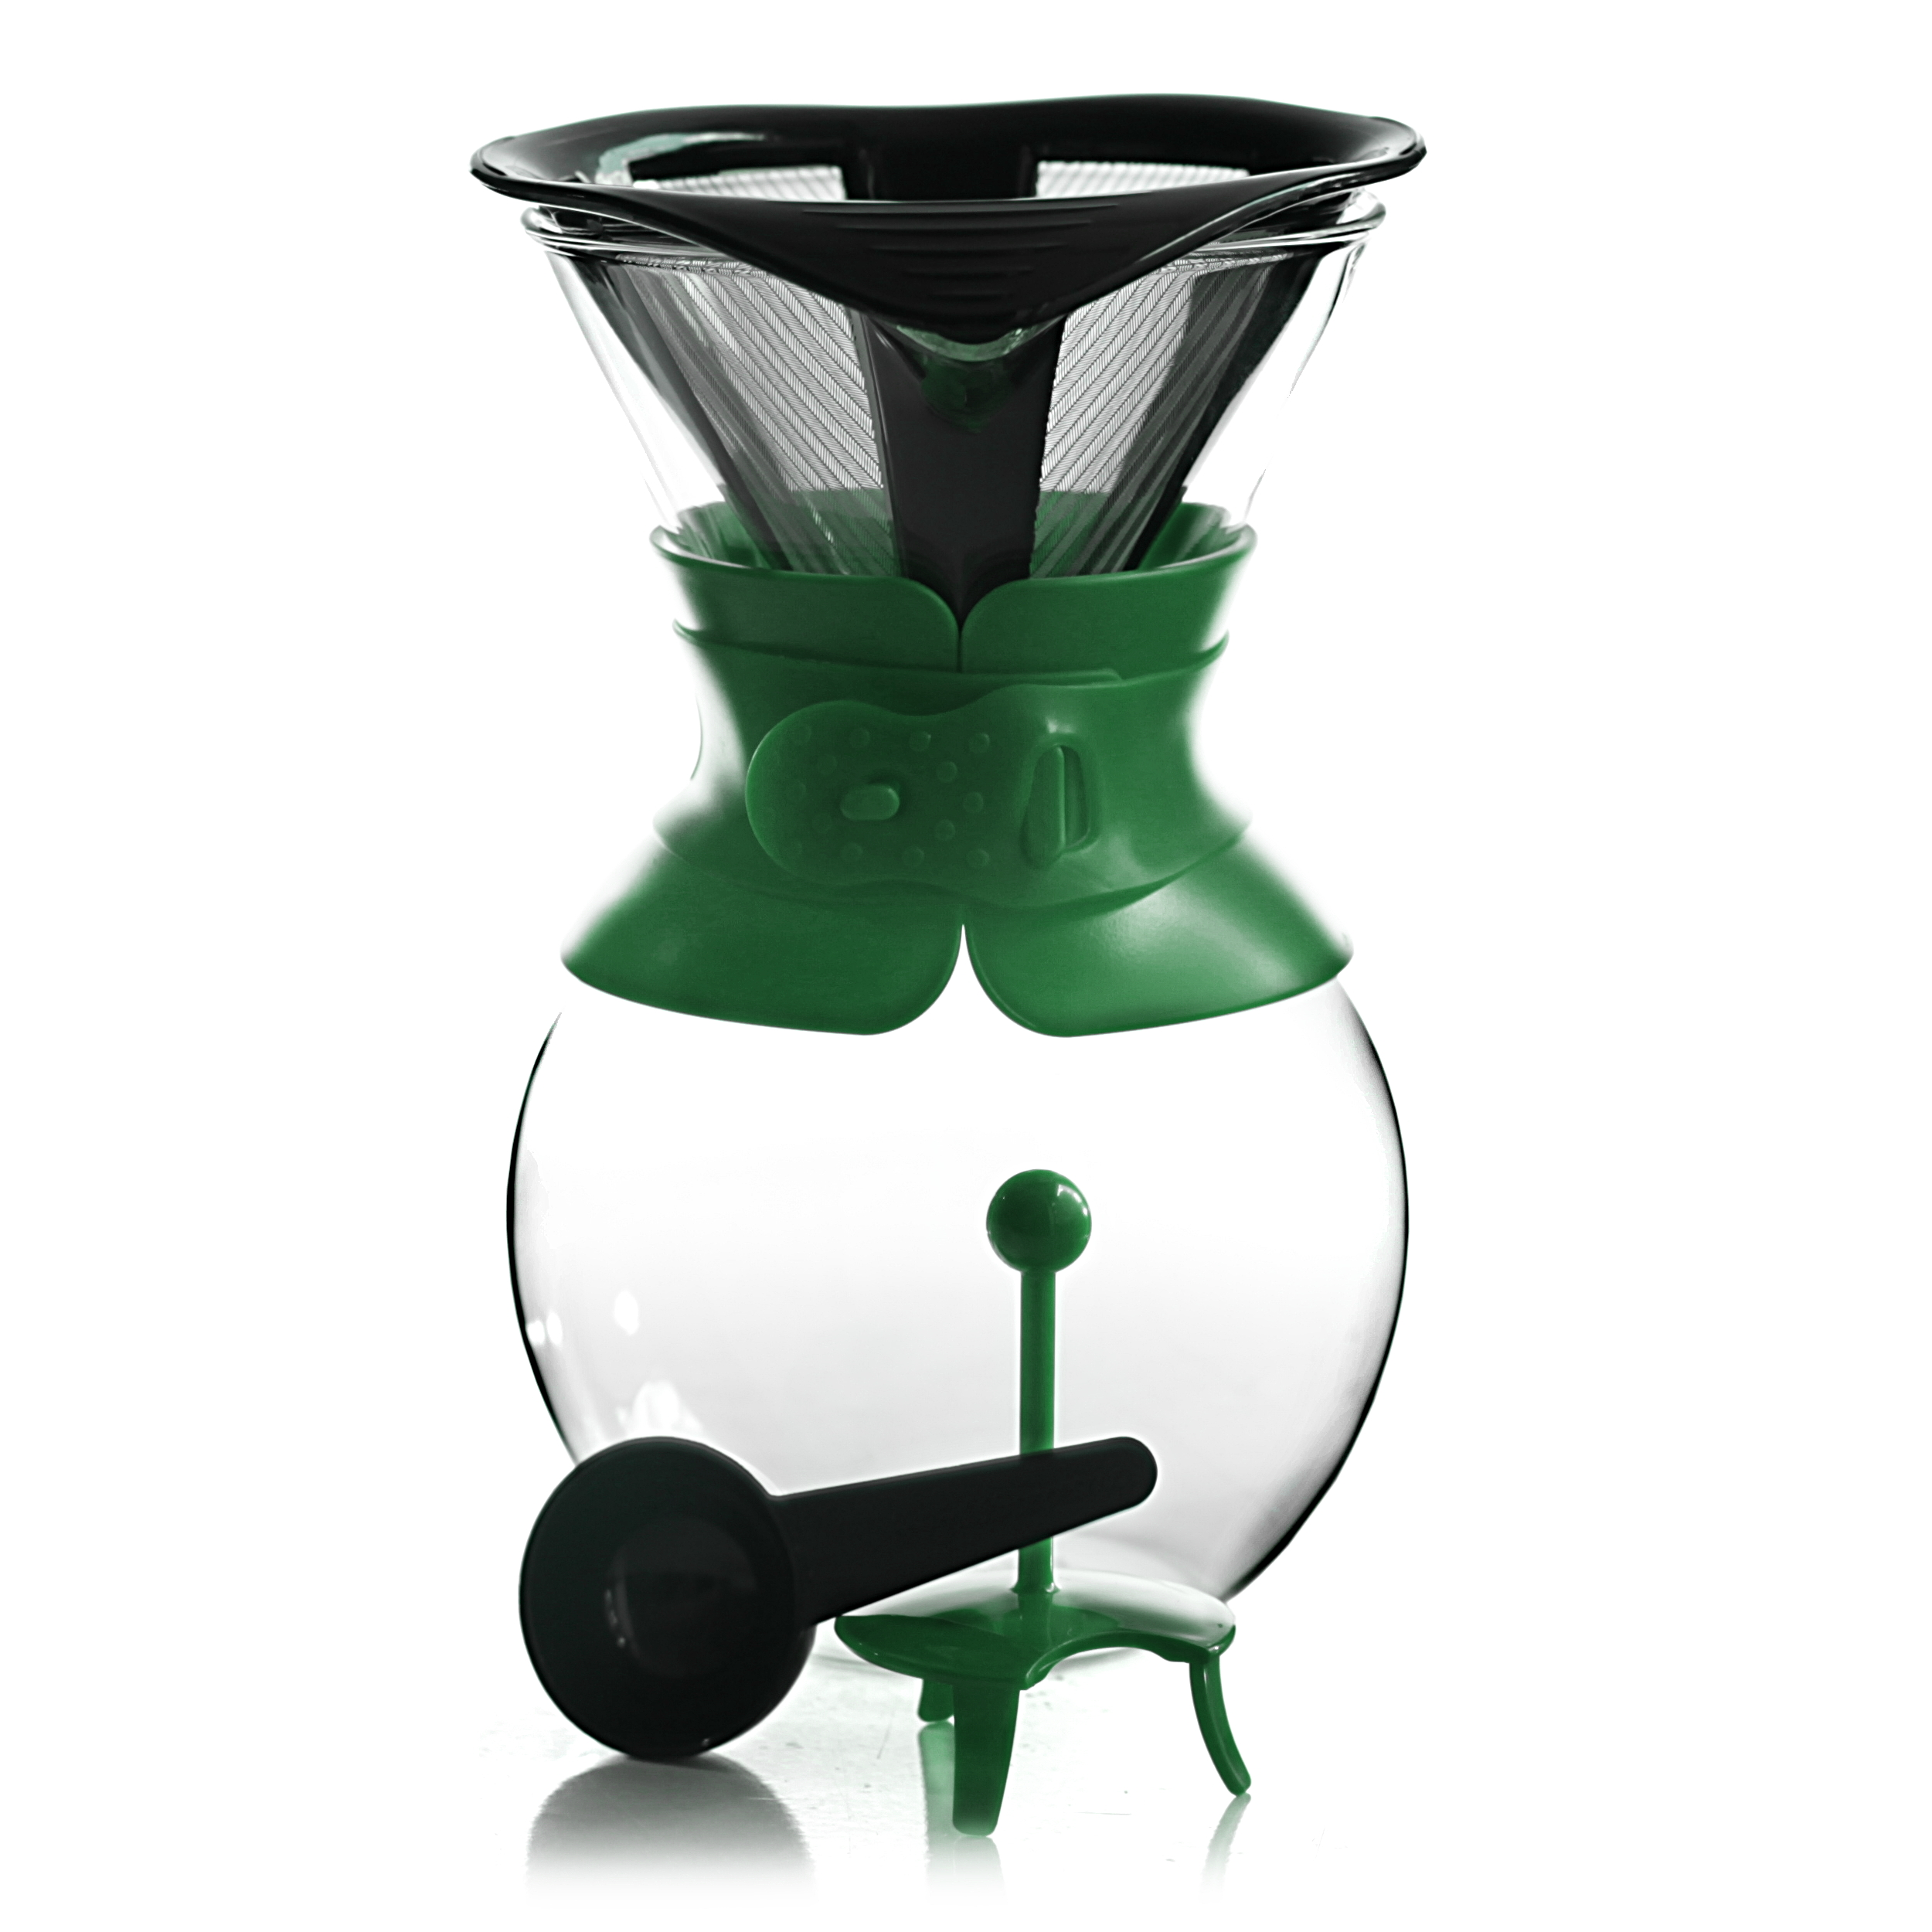 Bodum Pour Over Dark Green 34 Ounce Coffee Maker with Permanent Filter